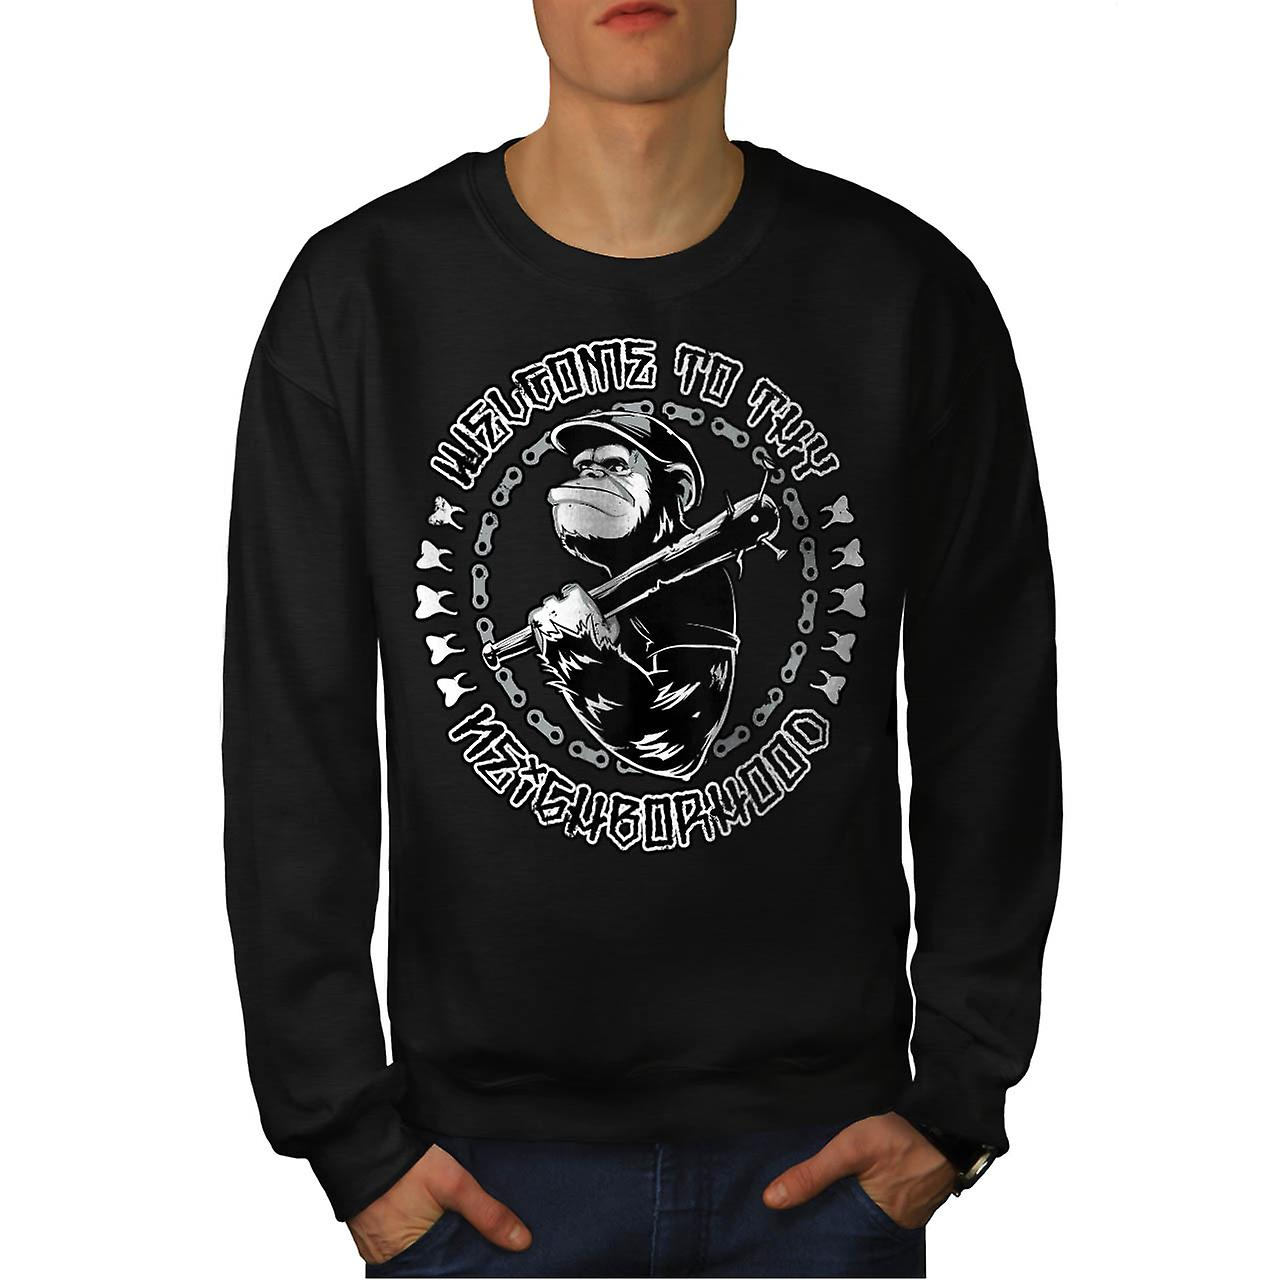 Singe chimpanzé hotte Bat voisin hommes Black Sweatshirt | Wellcoda